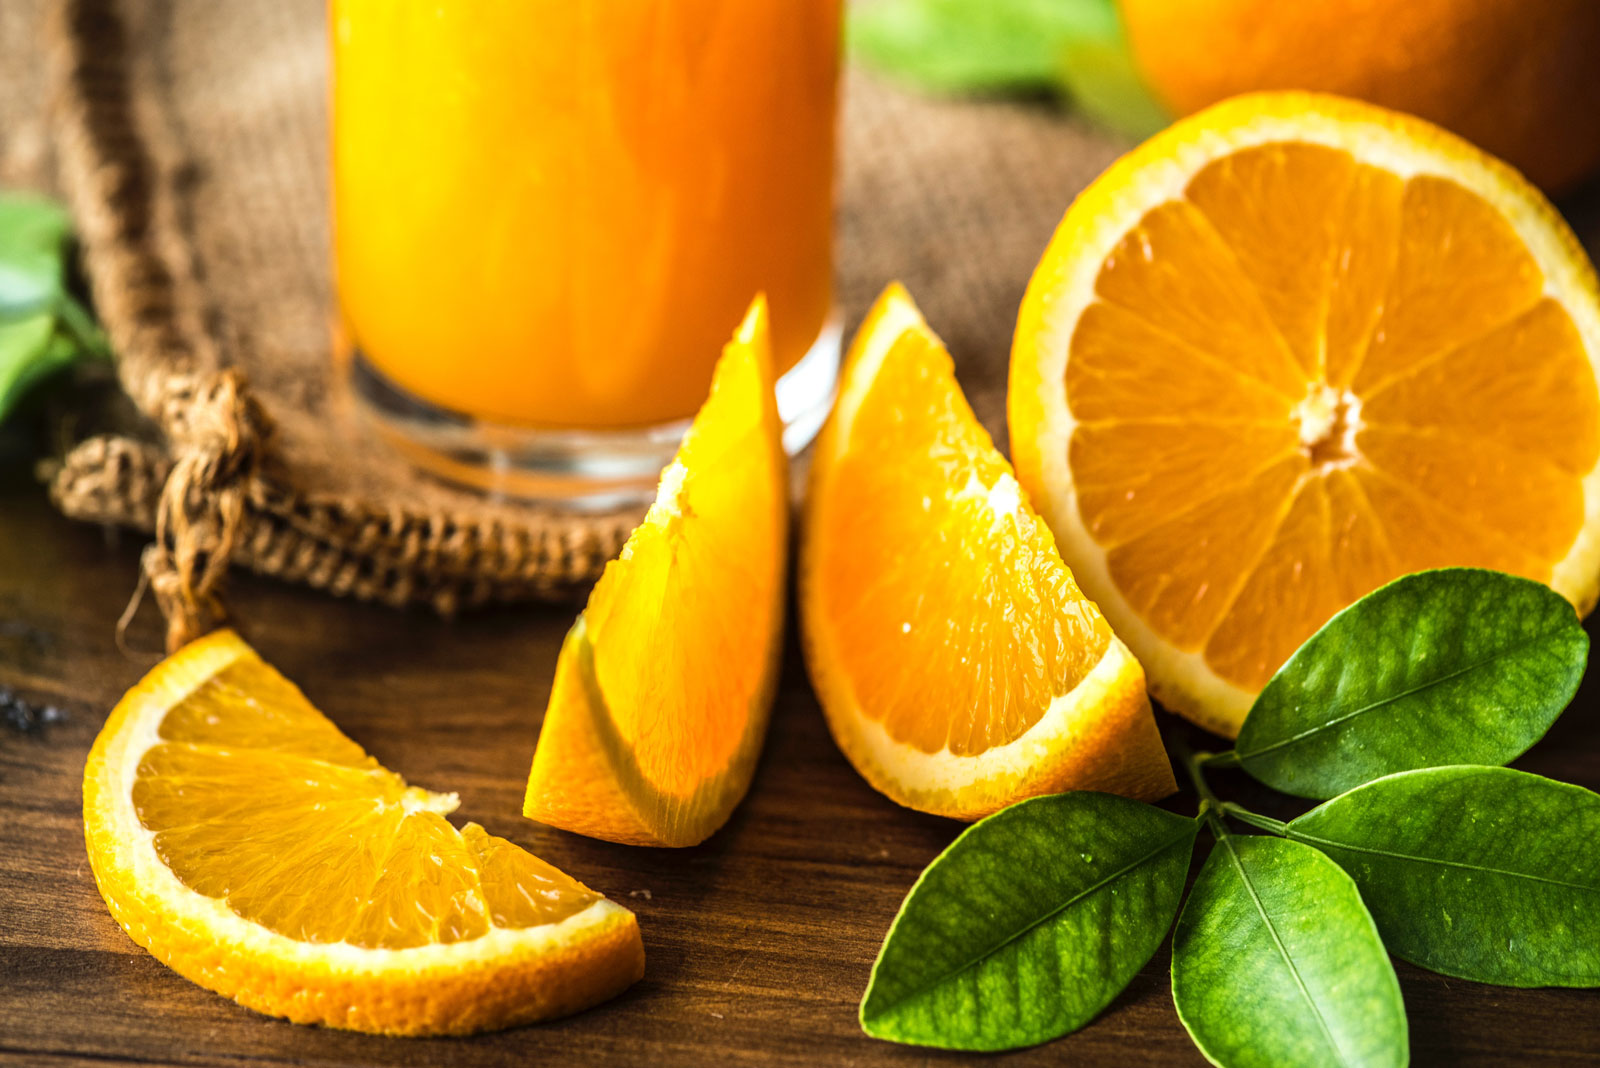 Oranges | The Best Fruits and Vegetables for Juicing With 3 Ingredients